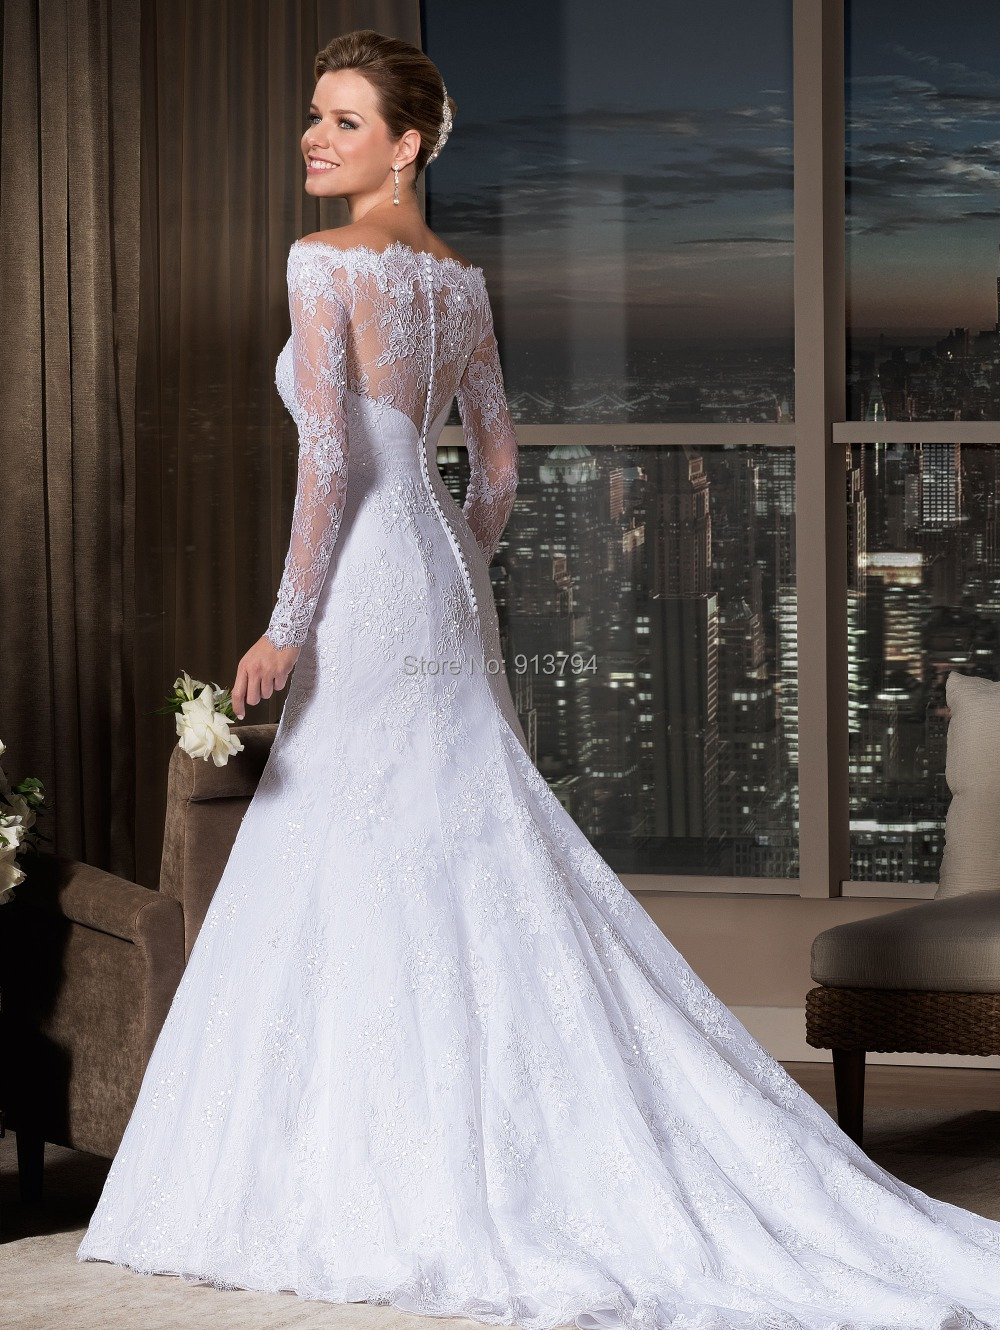 Long Sleeve Lace Off Shoulder Wedding Dress - Wedding Dress Ideas